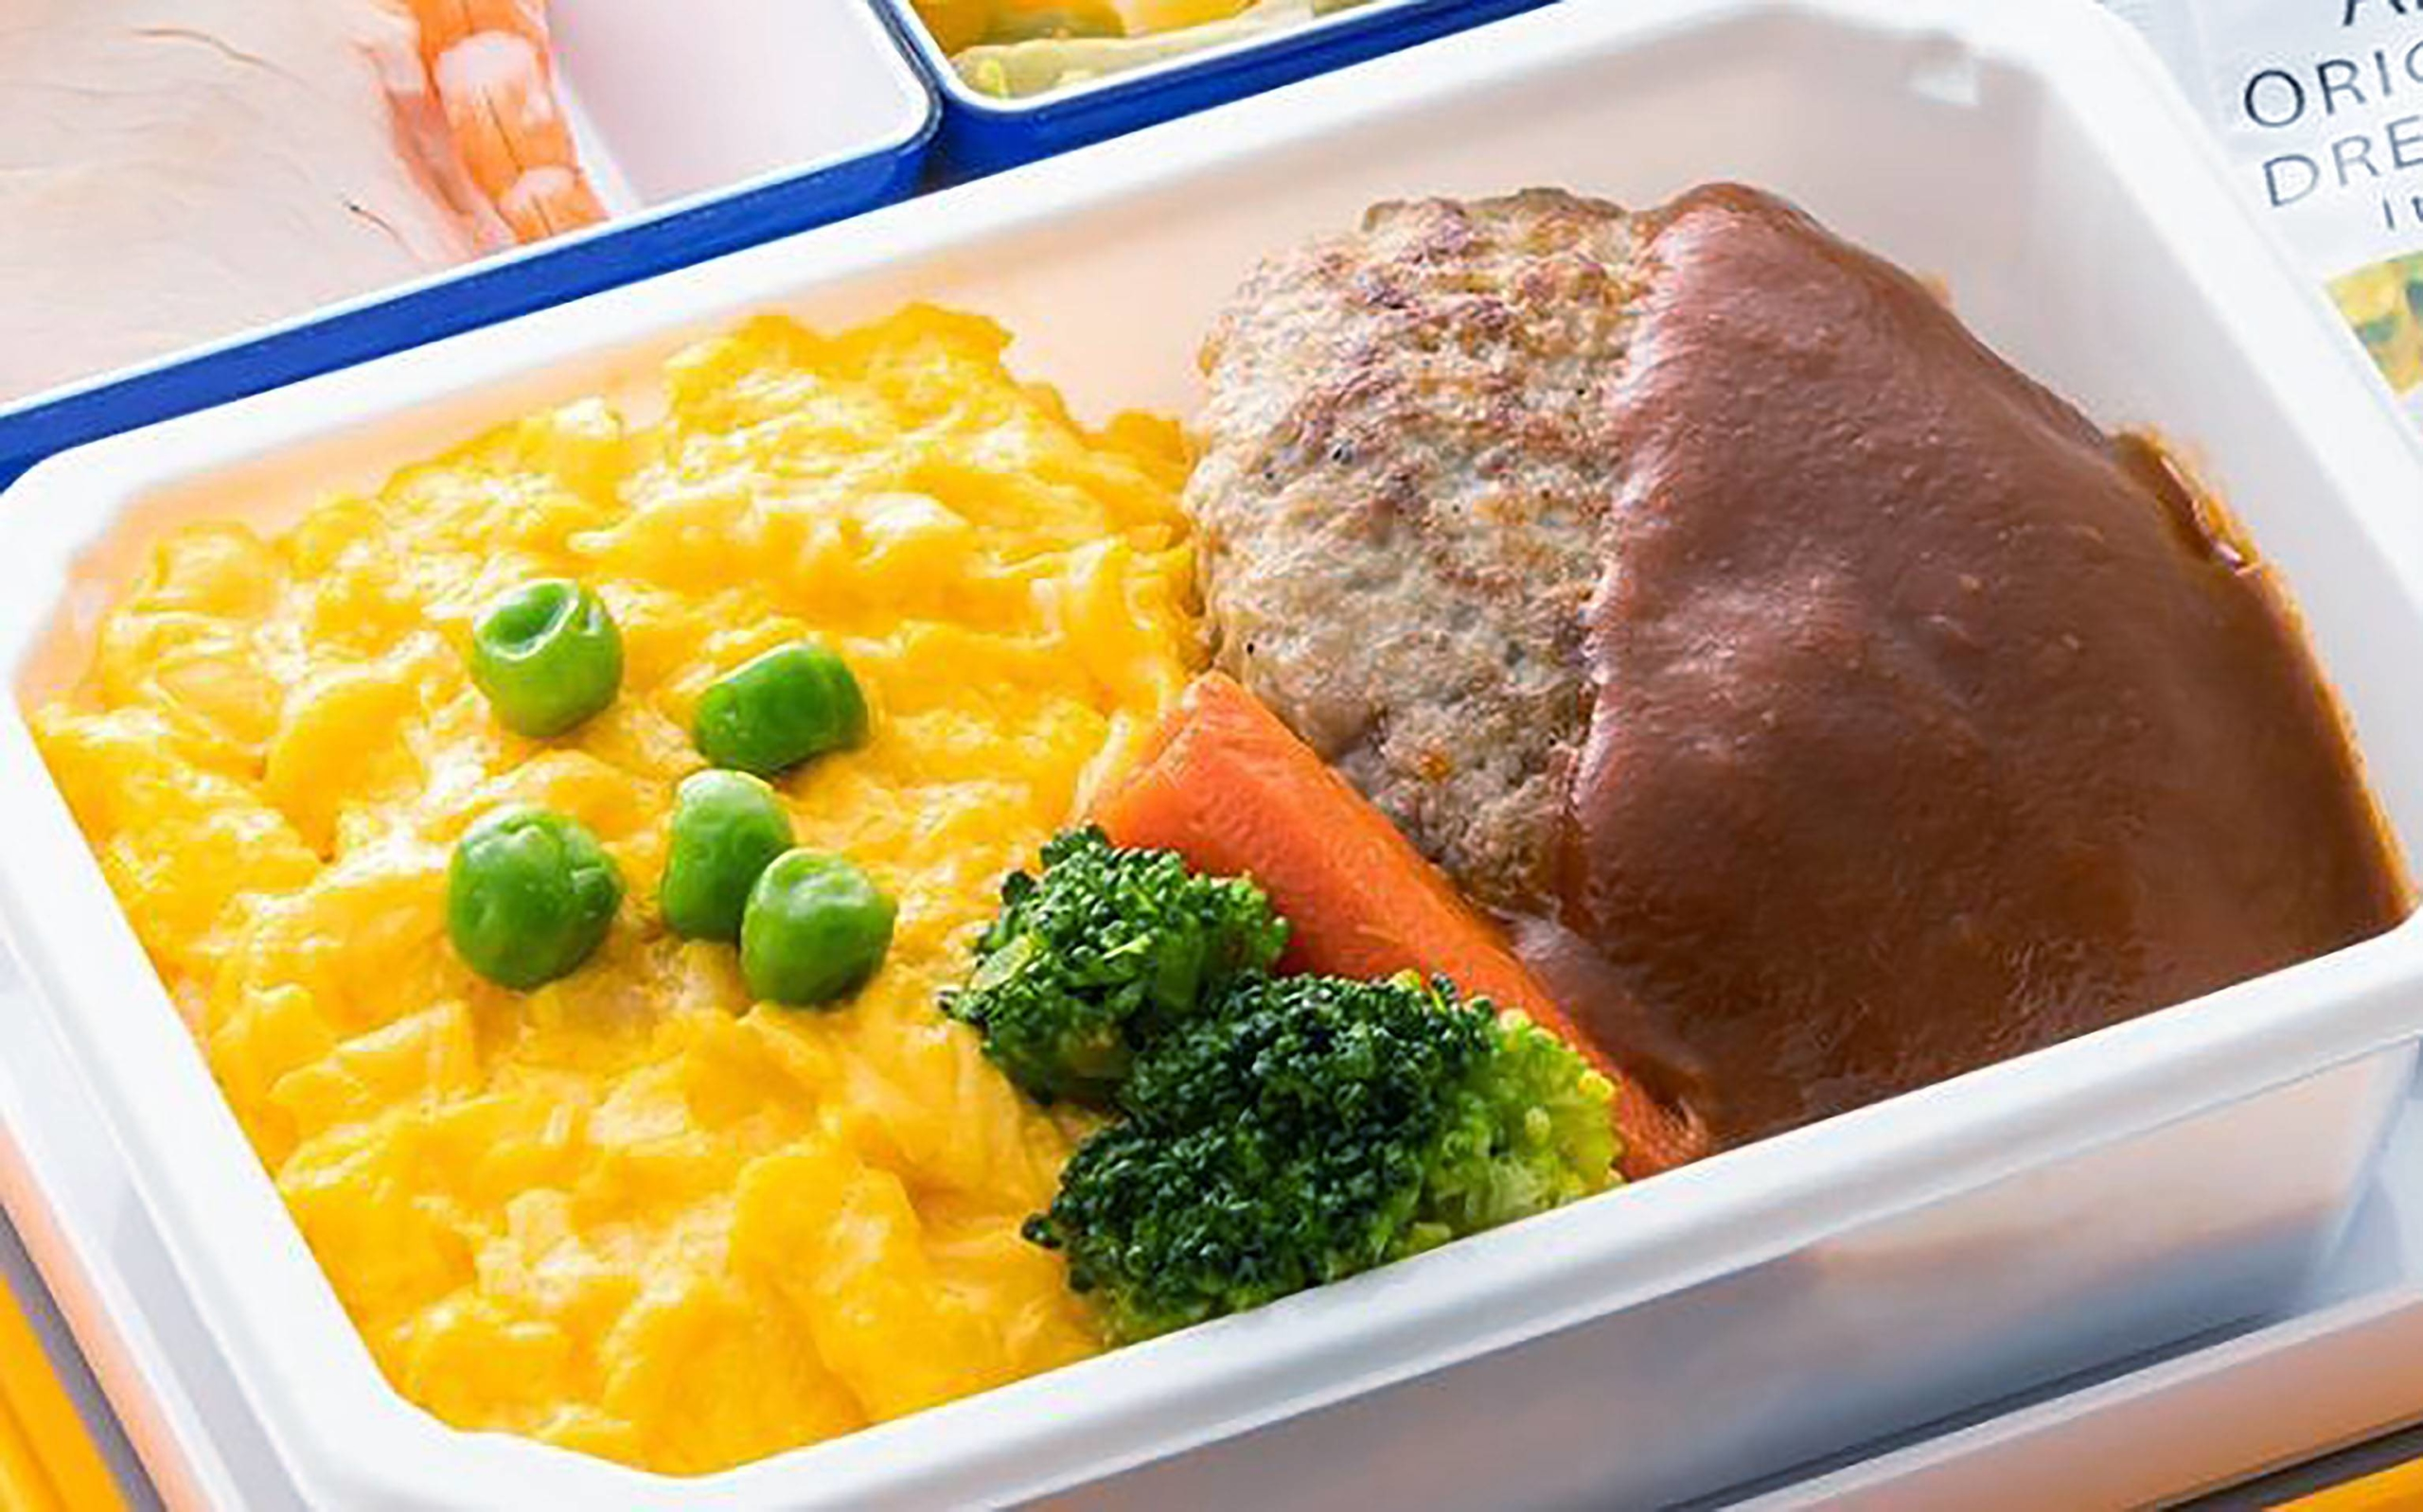 All Nippon Airways Co. began selling a limited number of in-flight meals online at the request of customers. | ALL NIPPON AIRWAYS CO. / VIA KYODO